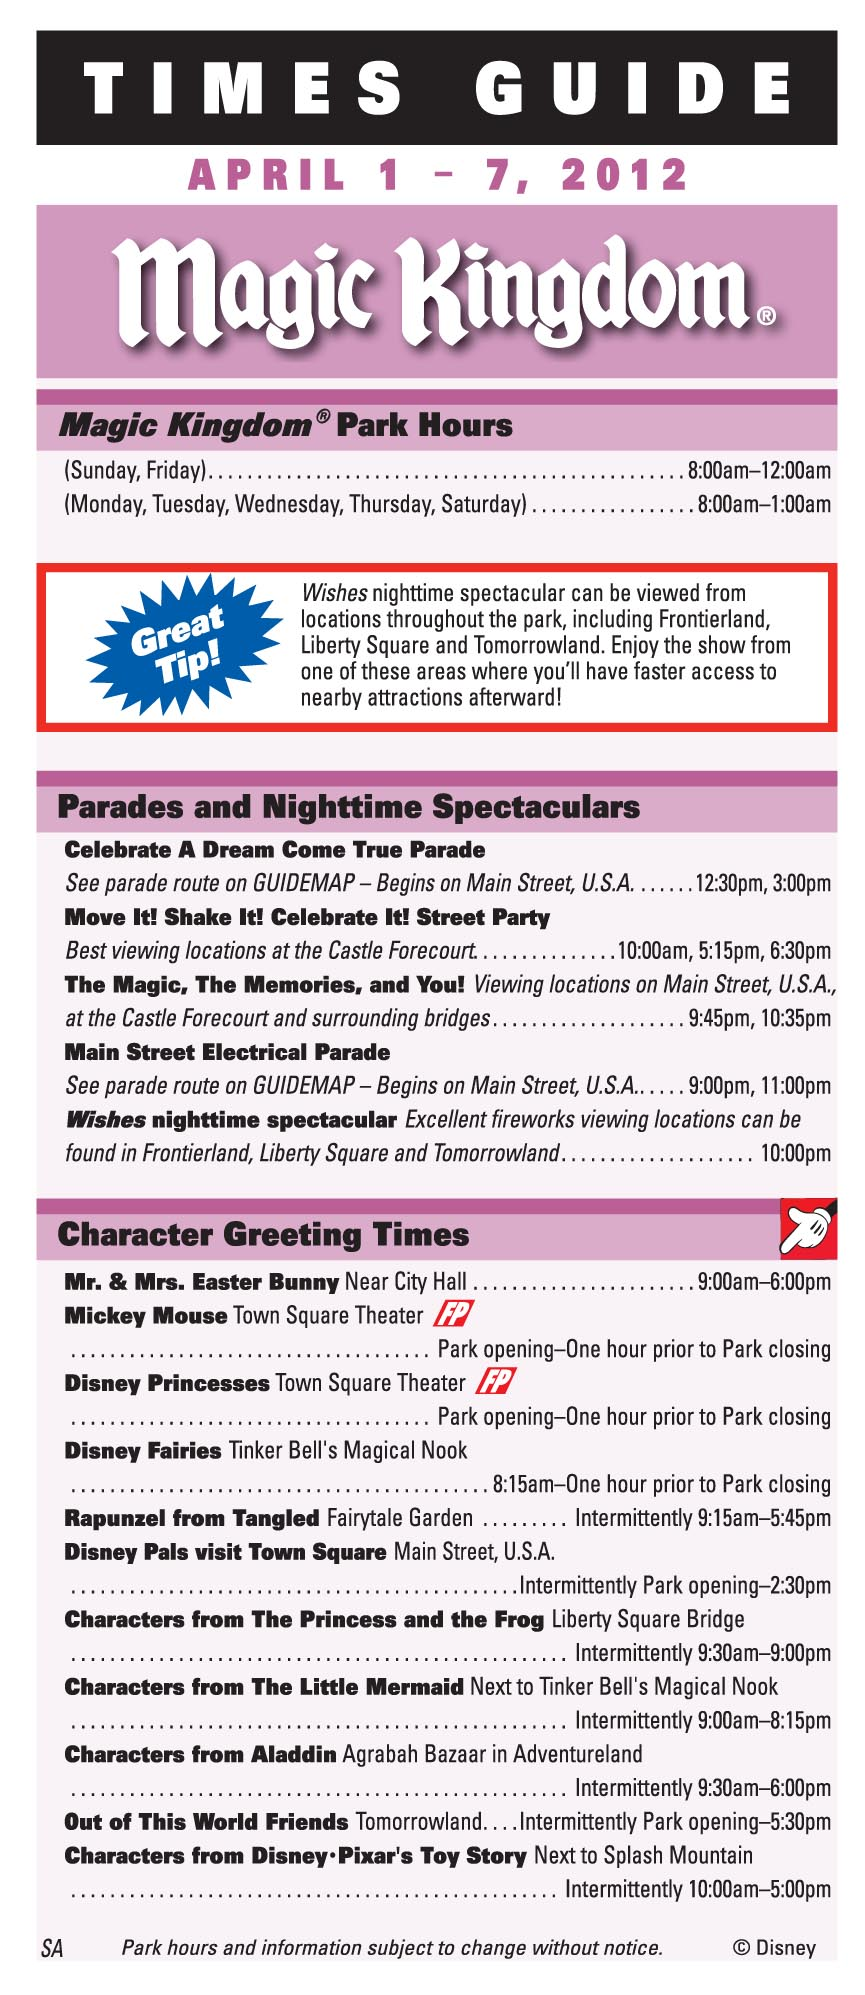 The Times Guide will give information about character greeting locations and hours.